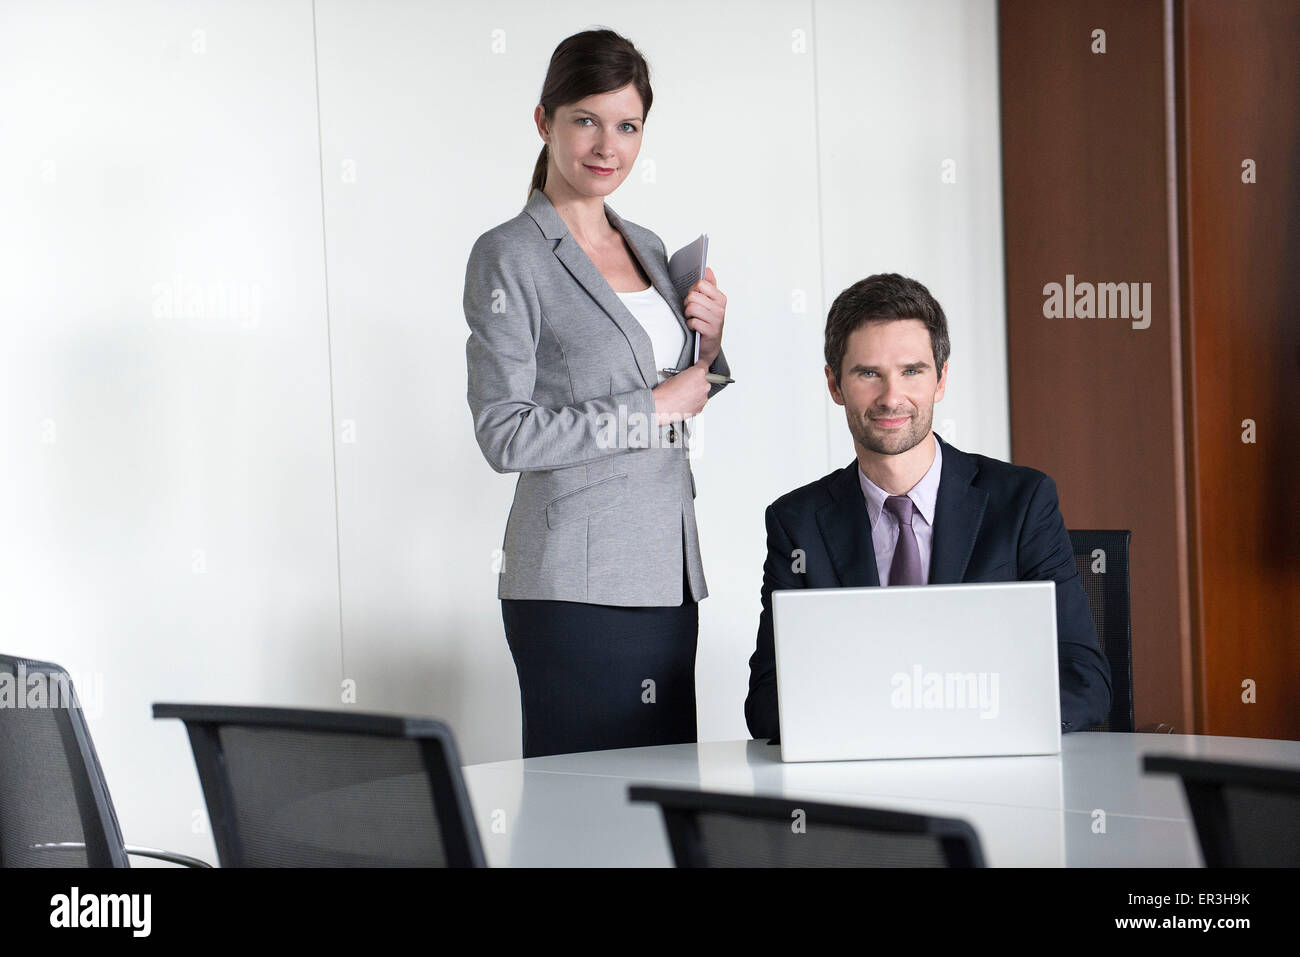 Business team members preparing for presentation - Stock Image